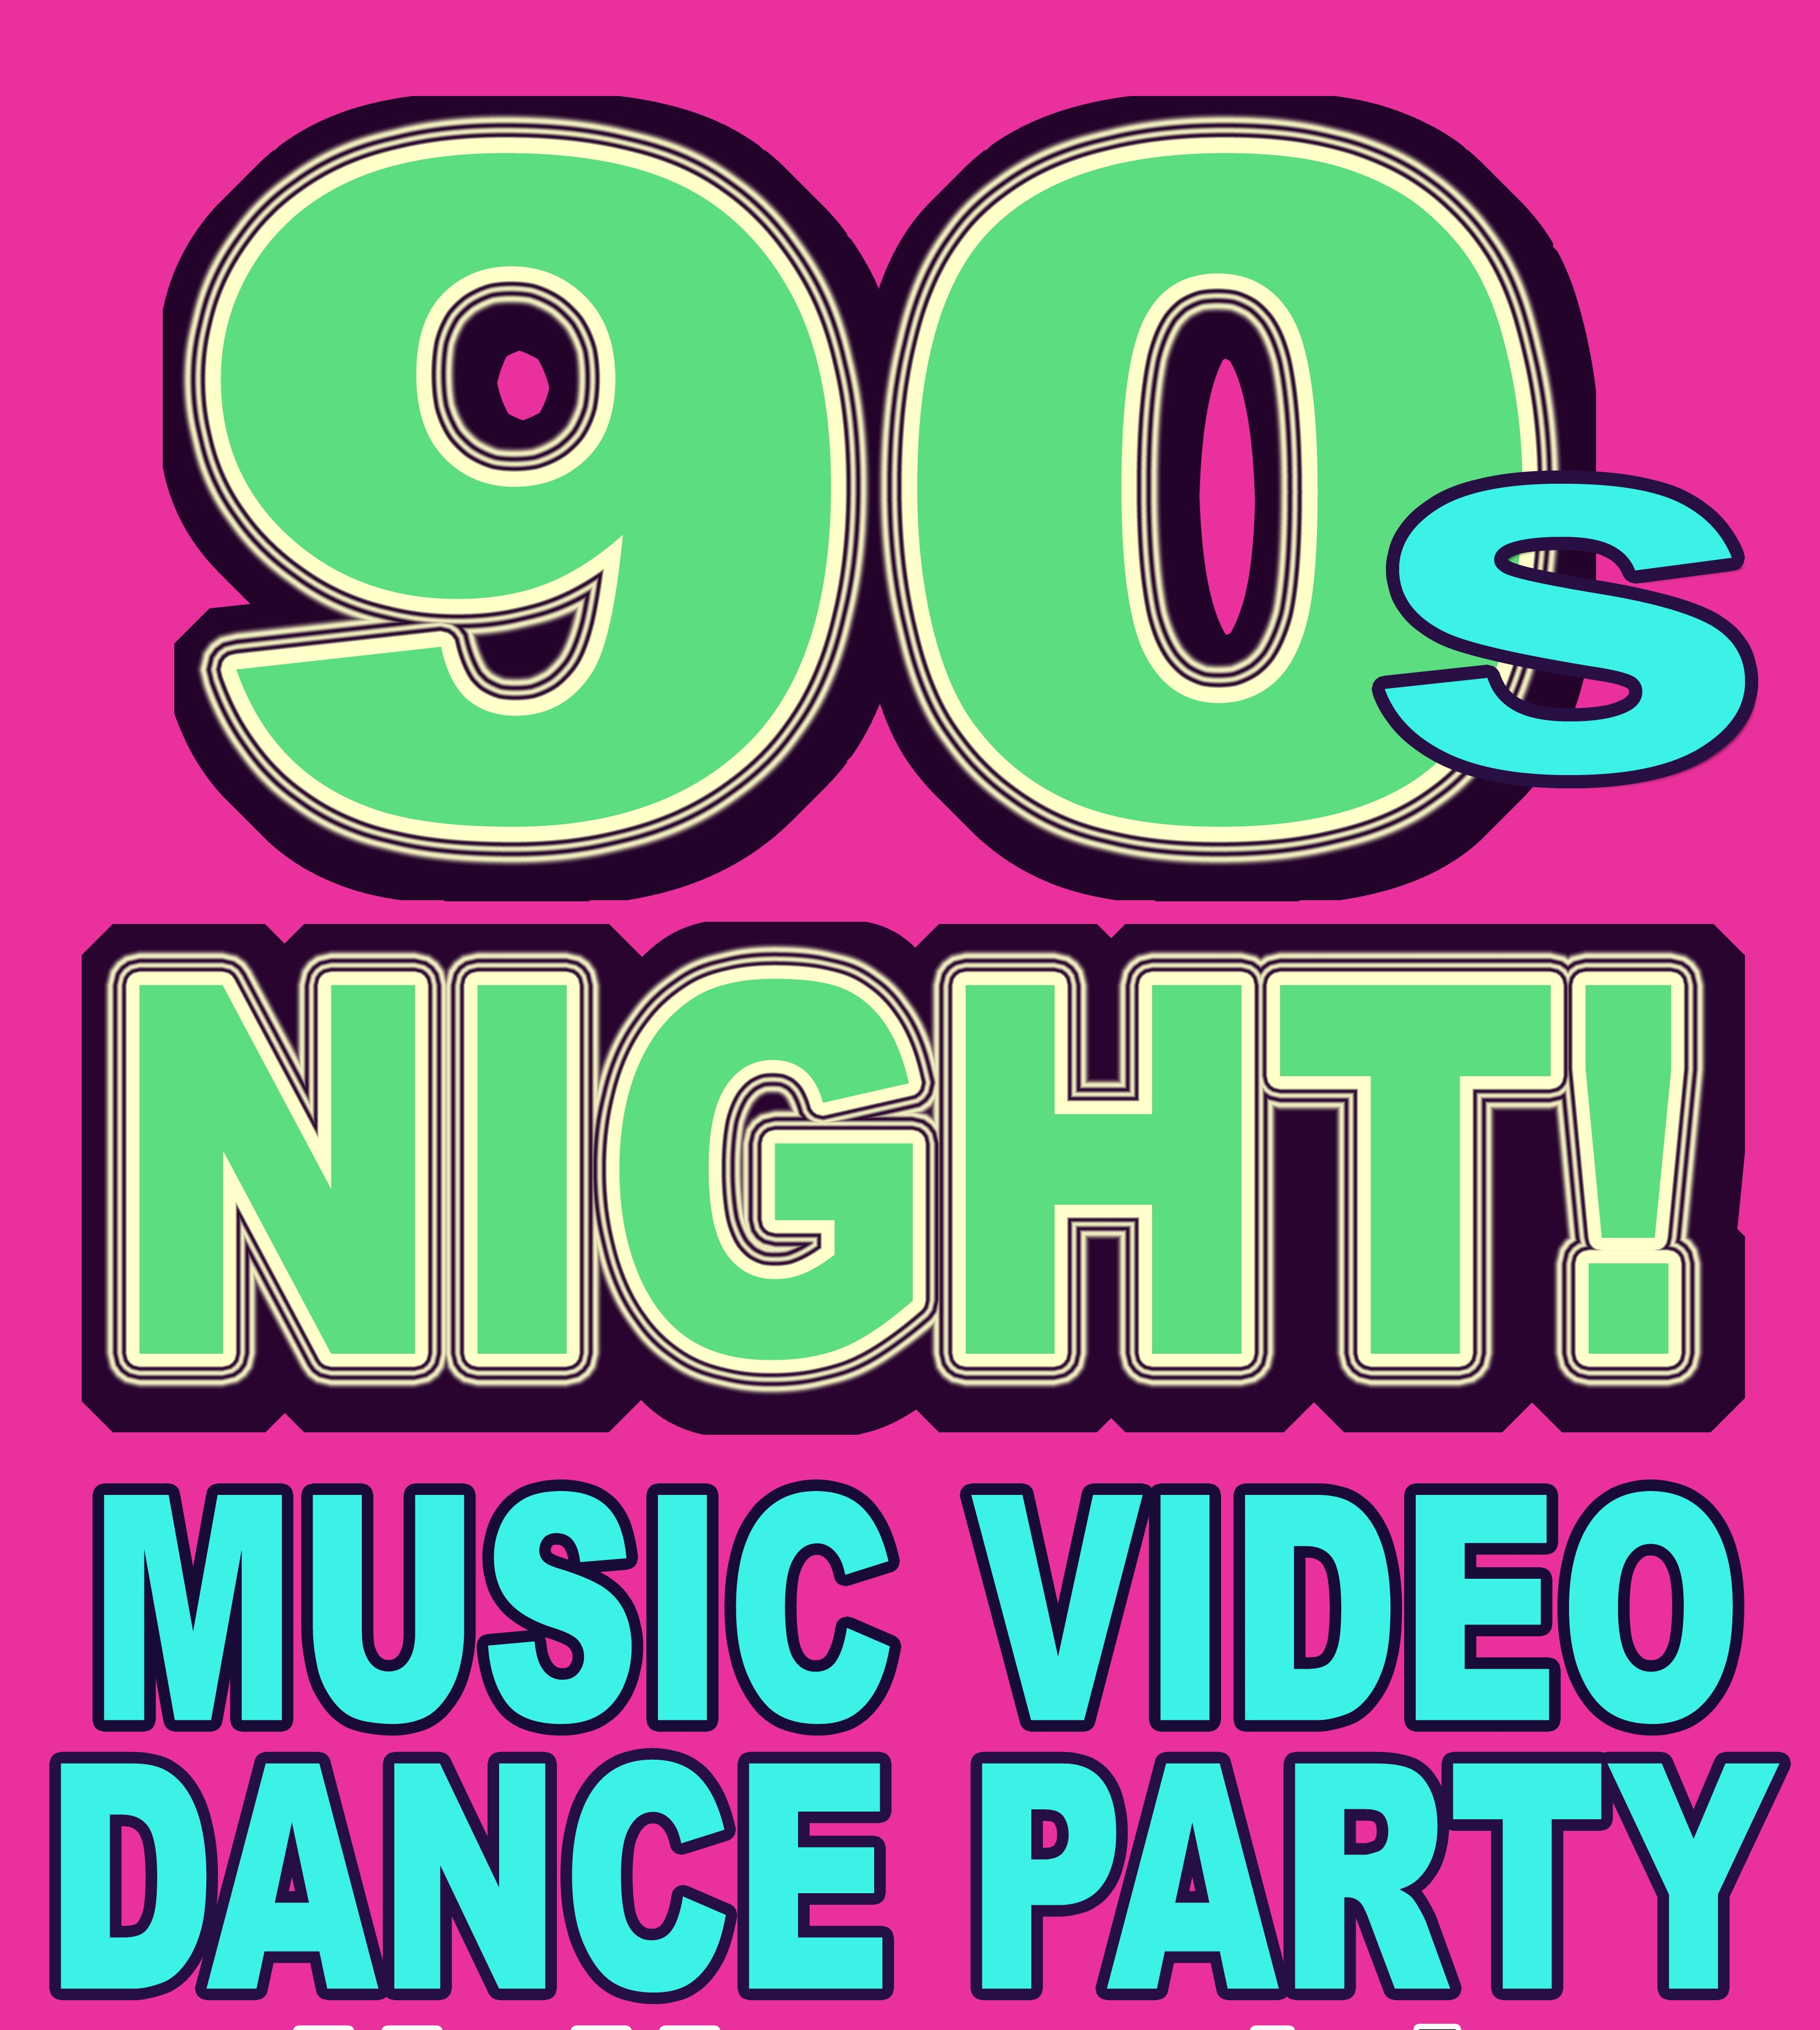 90s Night Music Video Dance Party